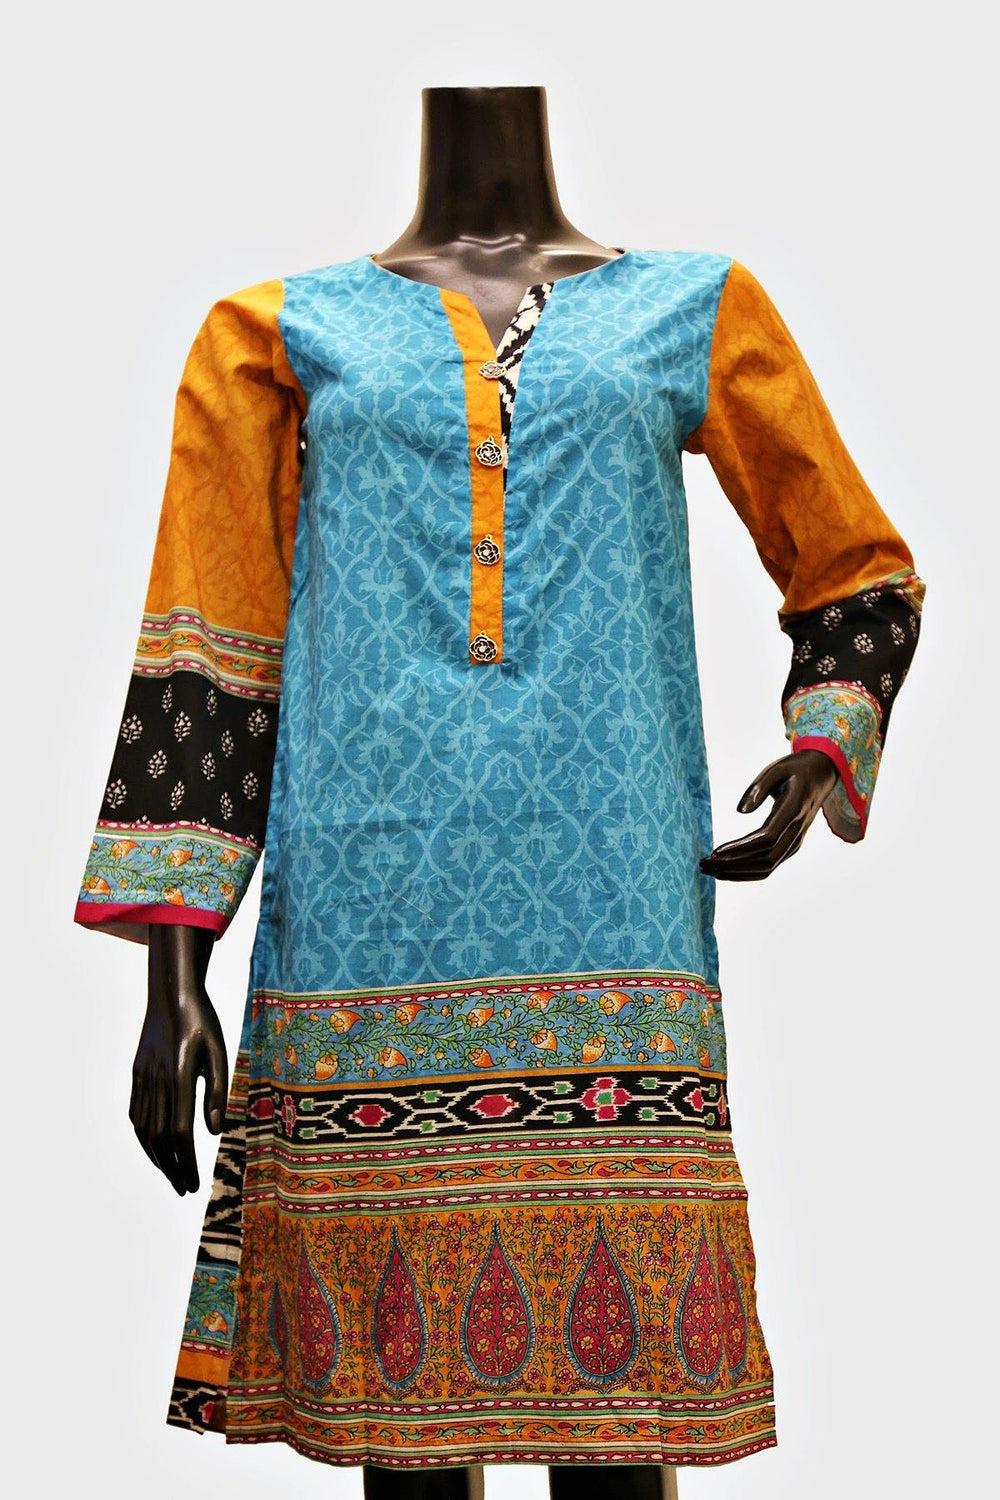 Aqua New 2020 Digital Print Kurti - Brandsea UK